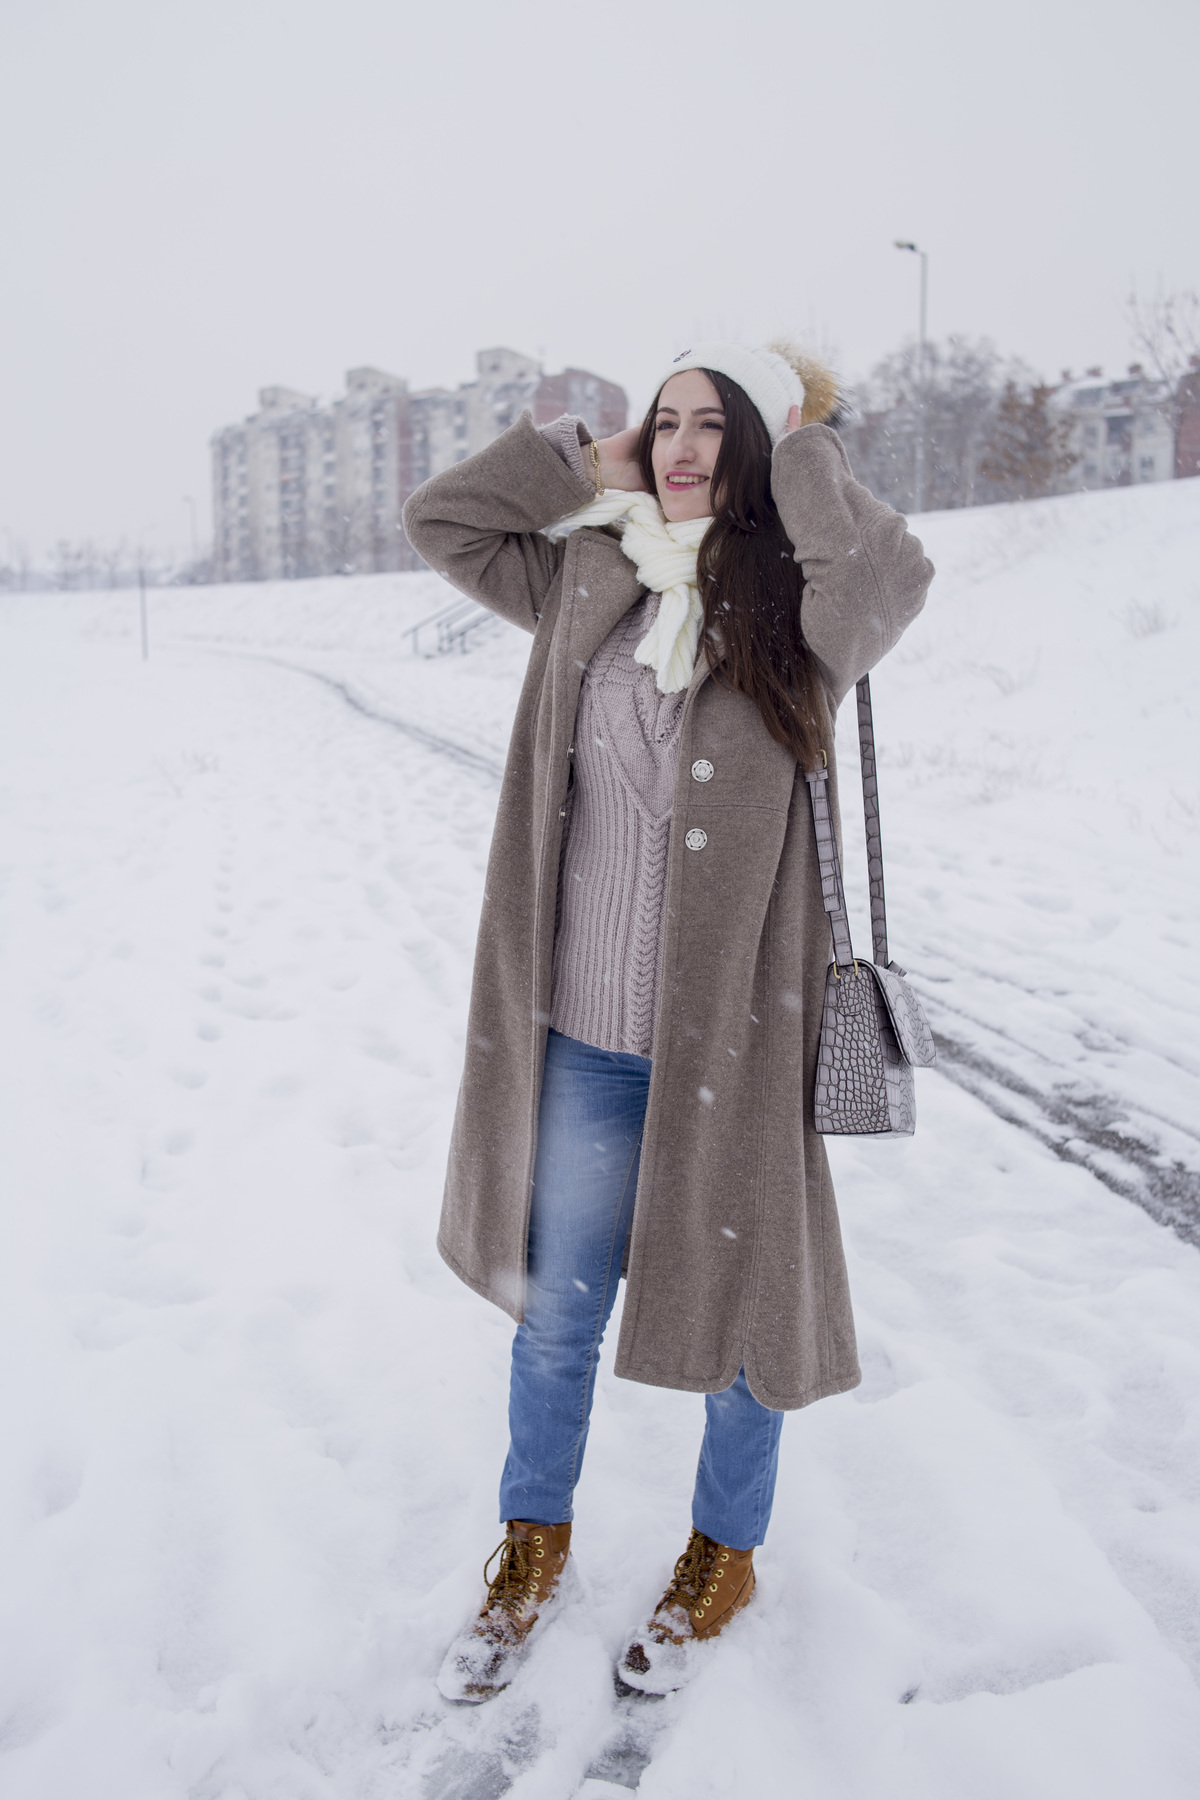 A casual winter outfit for a casual day in the snow!